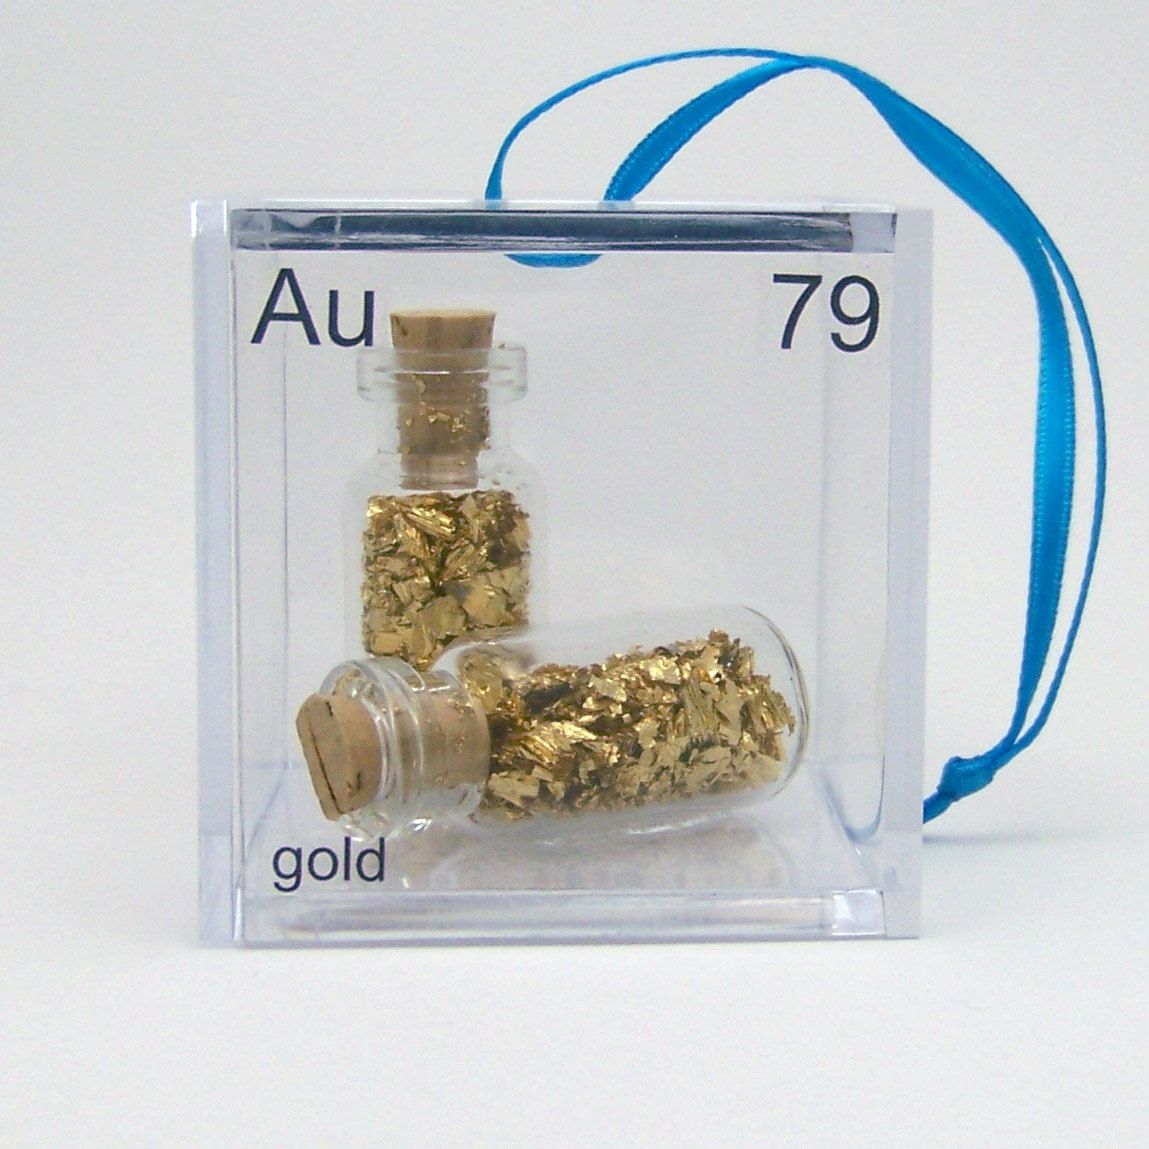 Gold periodic table of elements cube ornament school projects gold periodic table of elements cube ornament gamestrikefo Image collections